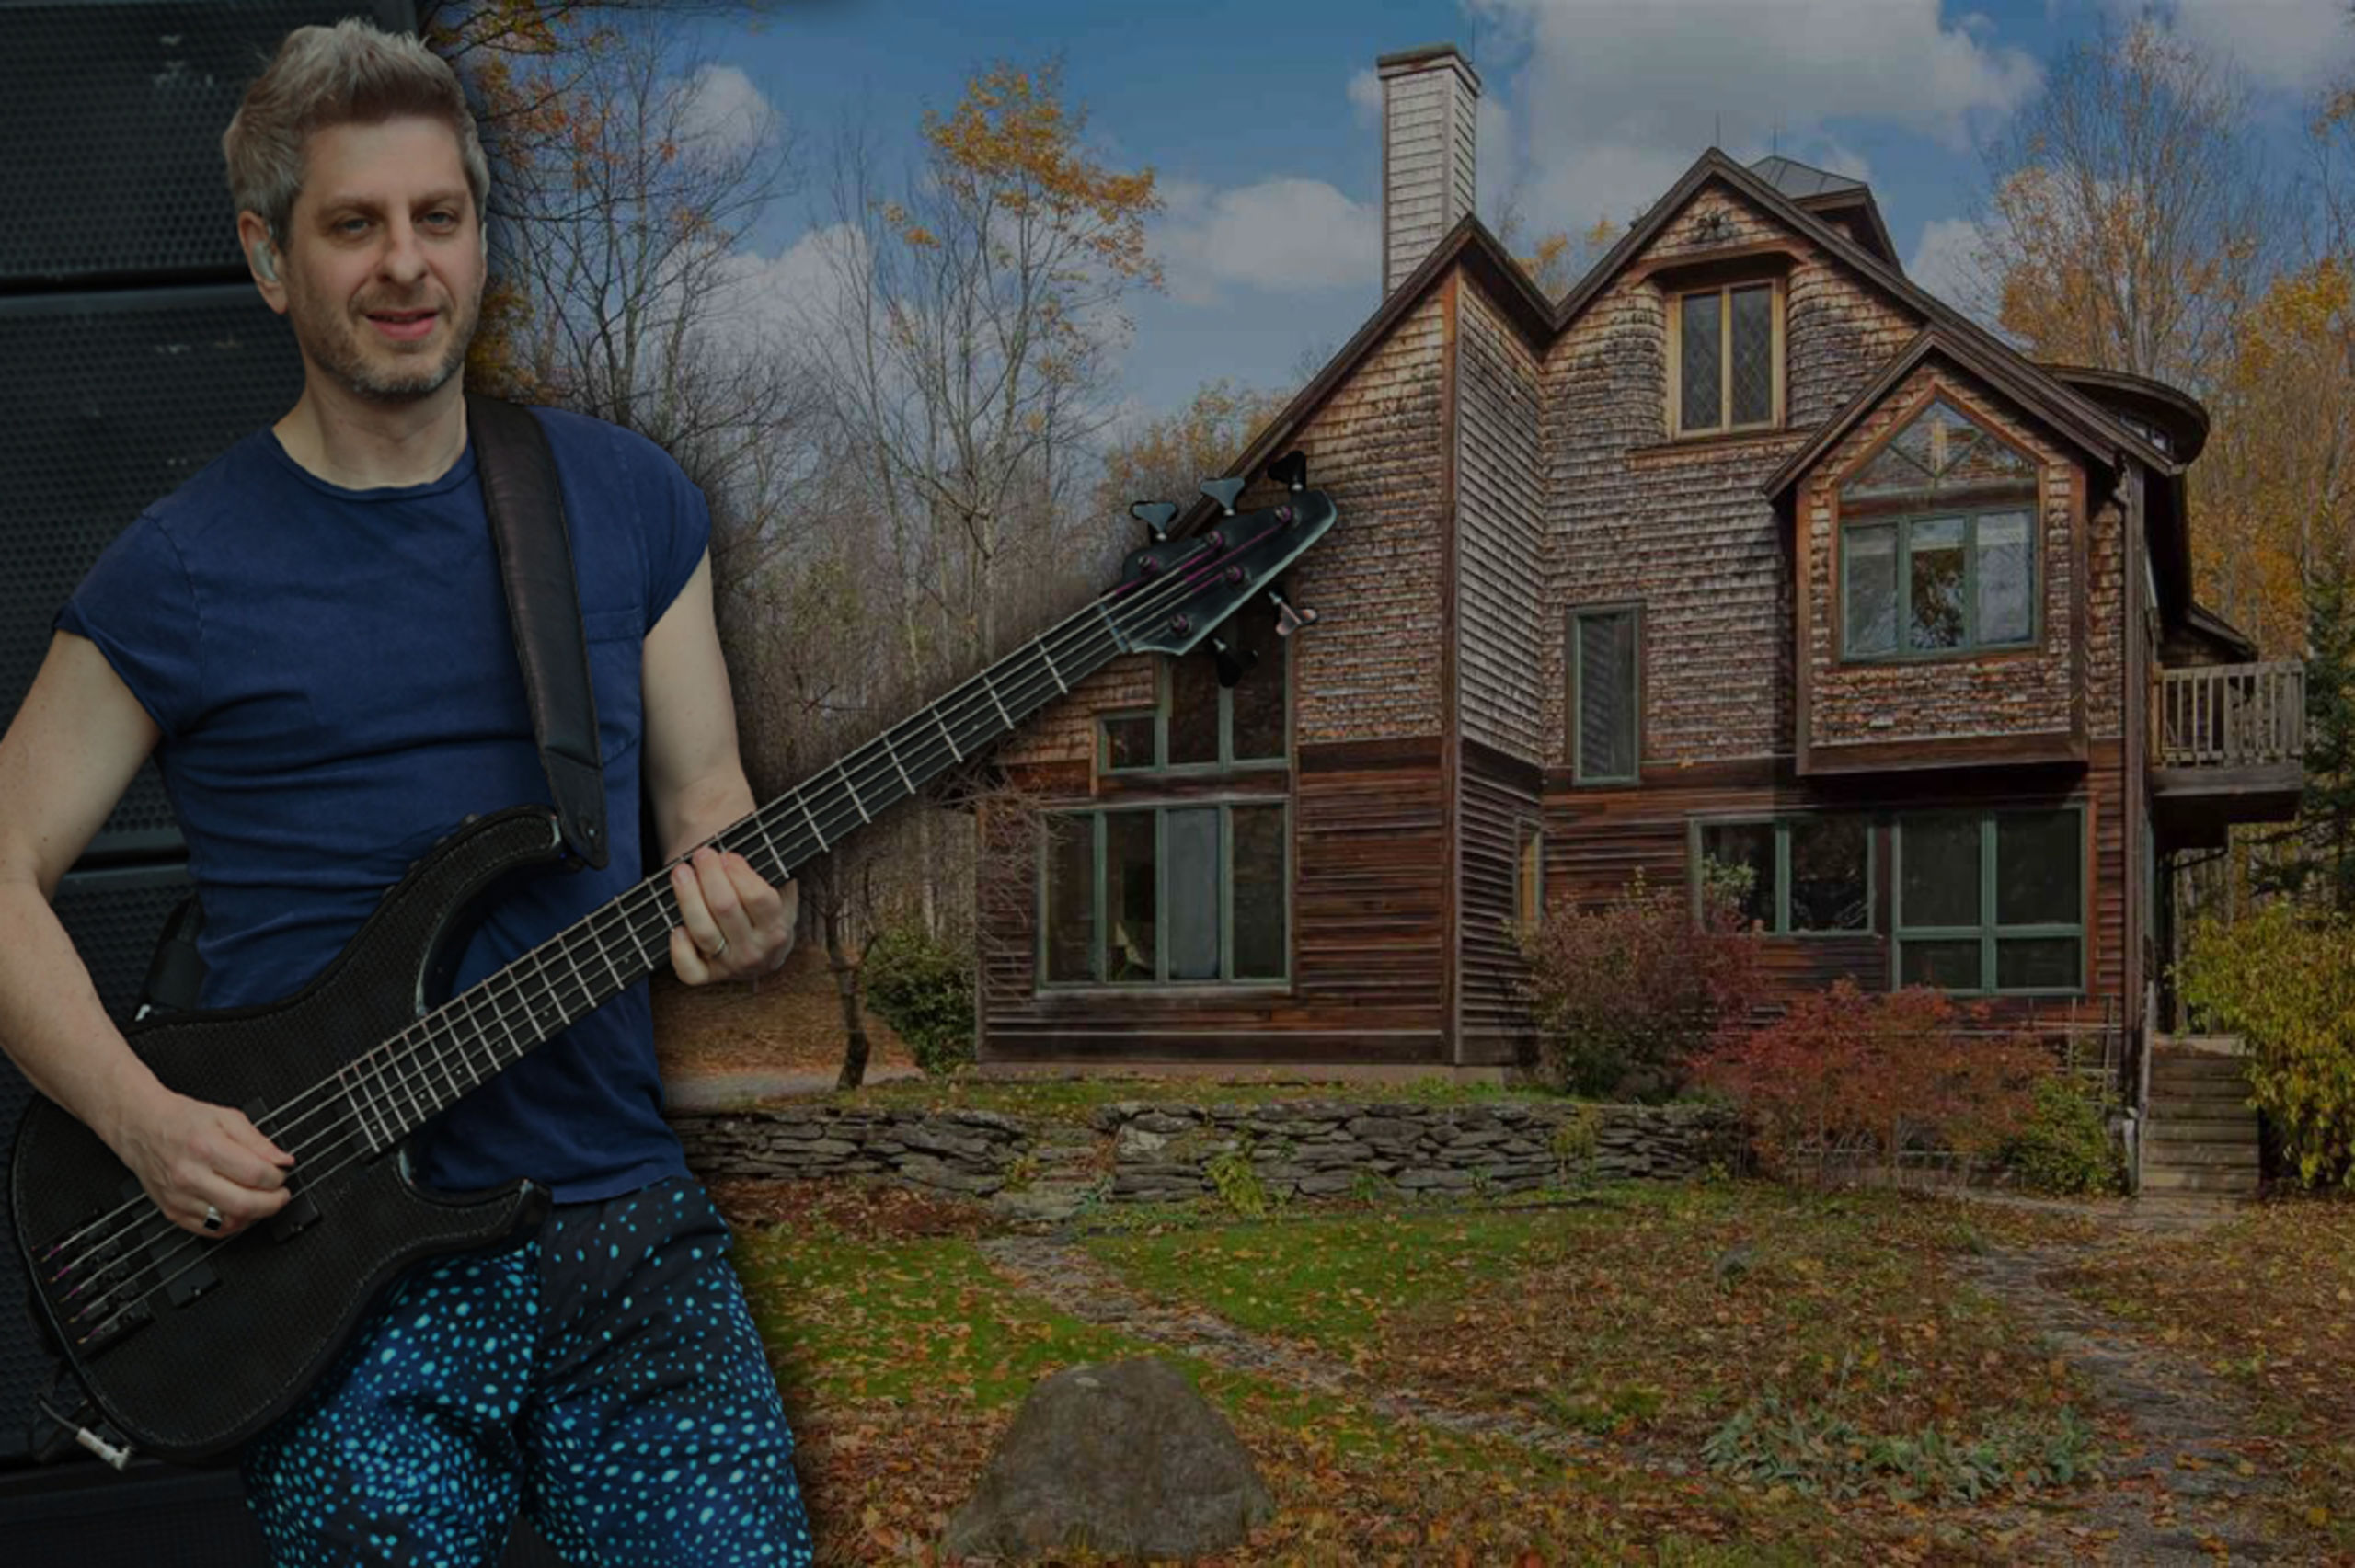 Phish Bassist Mike Gordon Selling Cool Country Home in Vermont for $895K